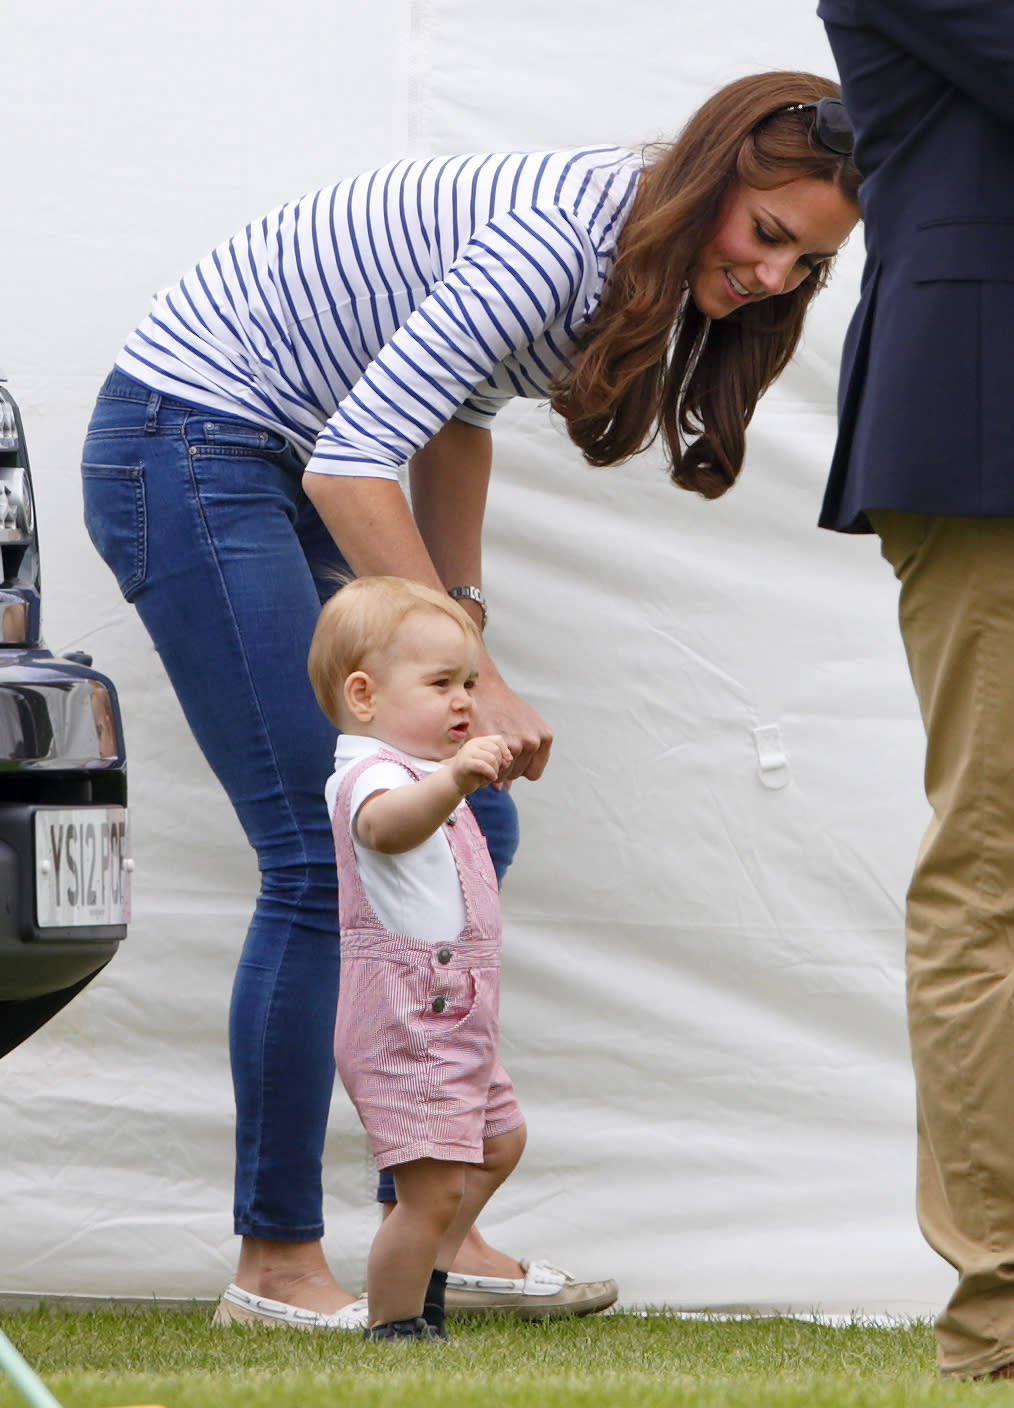 Prince George of Cambridge walks holding his Catherine, Duchess of Cambridge's hand as they watch Prince William, Duke of Cambridge & Prince Harry play in the Jerudong Trophy charity polo match. Kate is seen wearing a casual striped top and a pair of skinny jeans, while George is wearing an adorable pair of overalls.